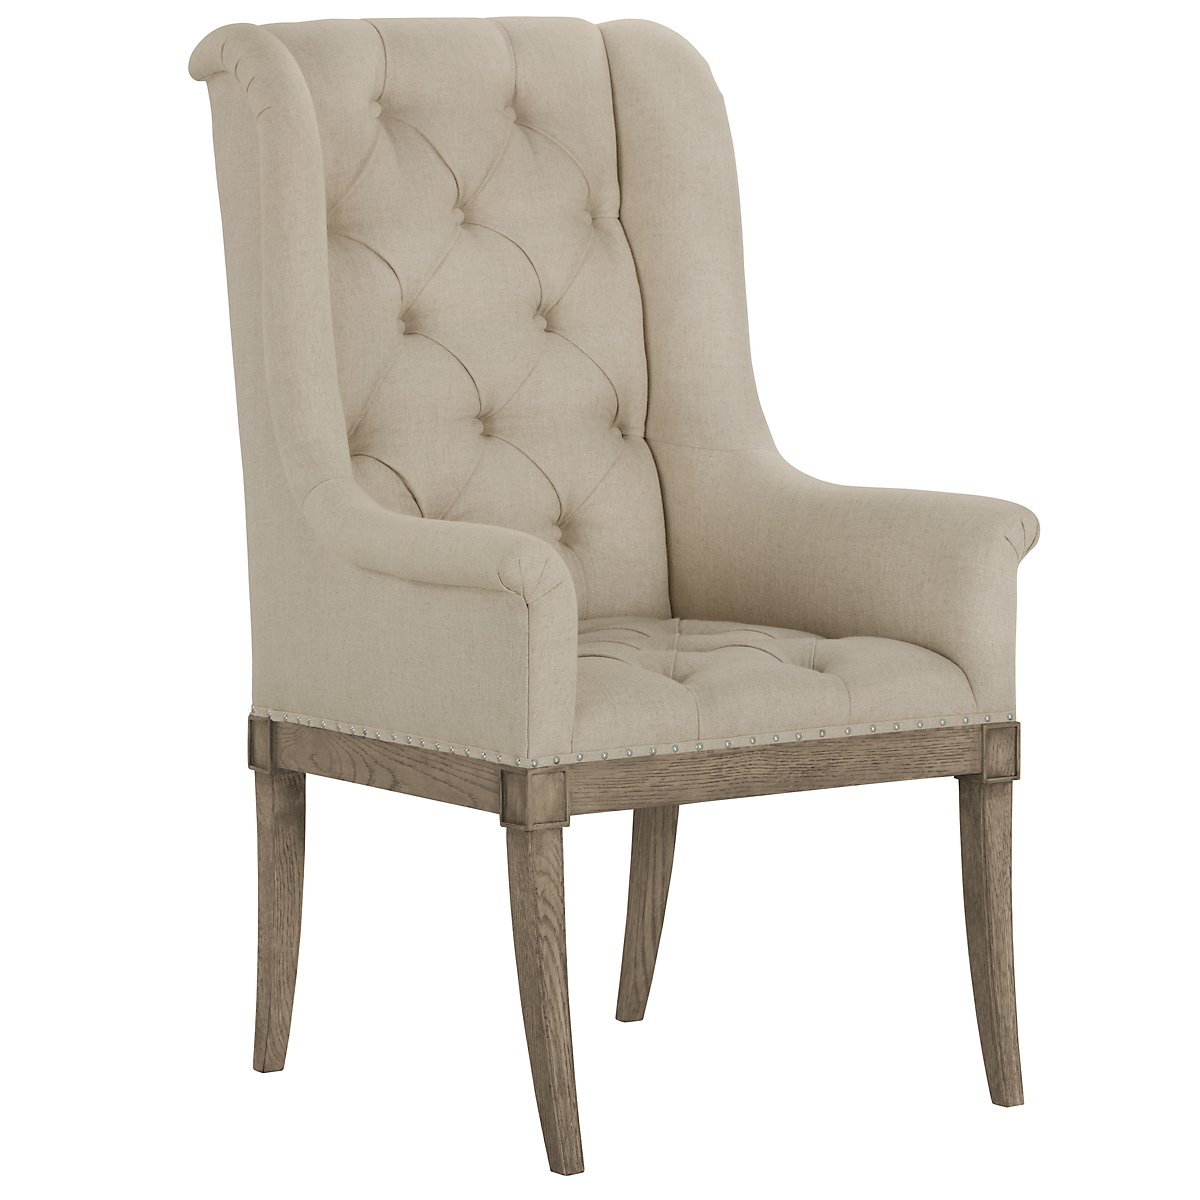 Marquesa Beige Upholstered Upholstered Arm Chair